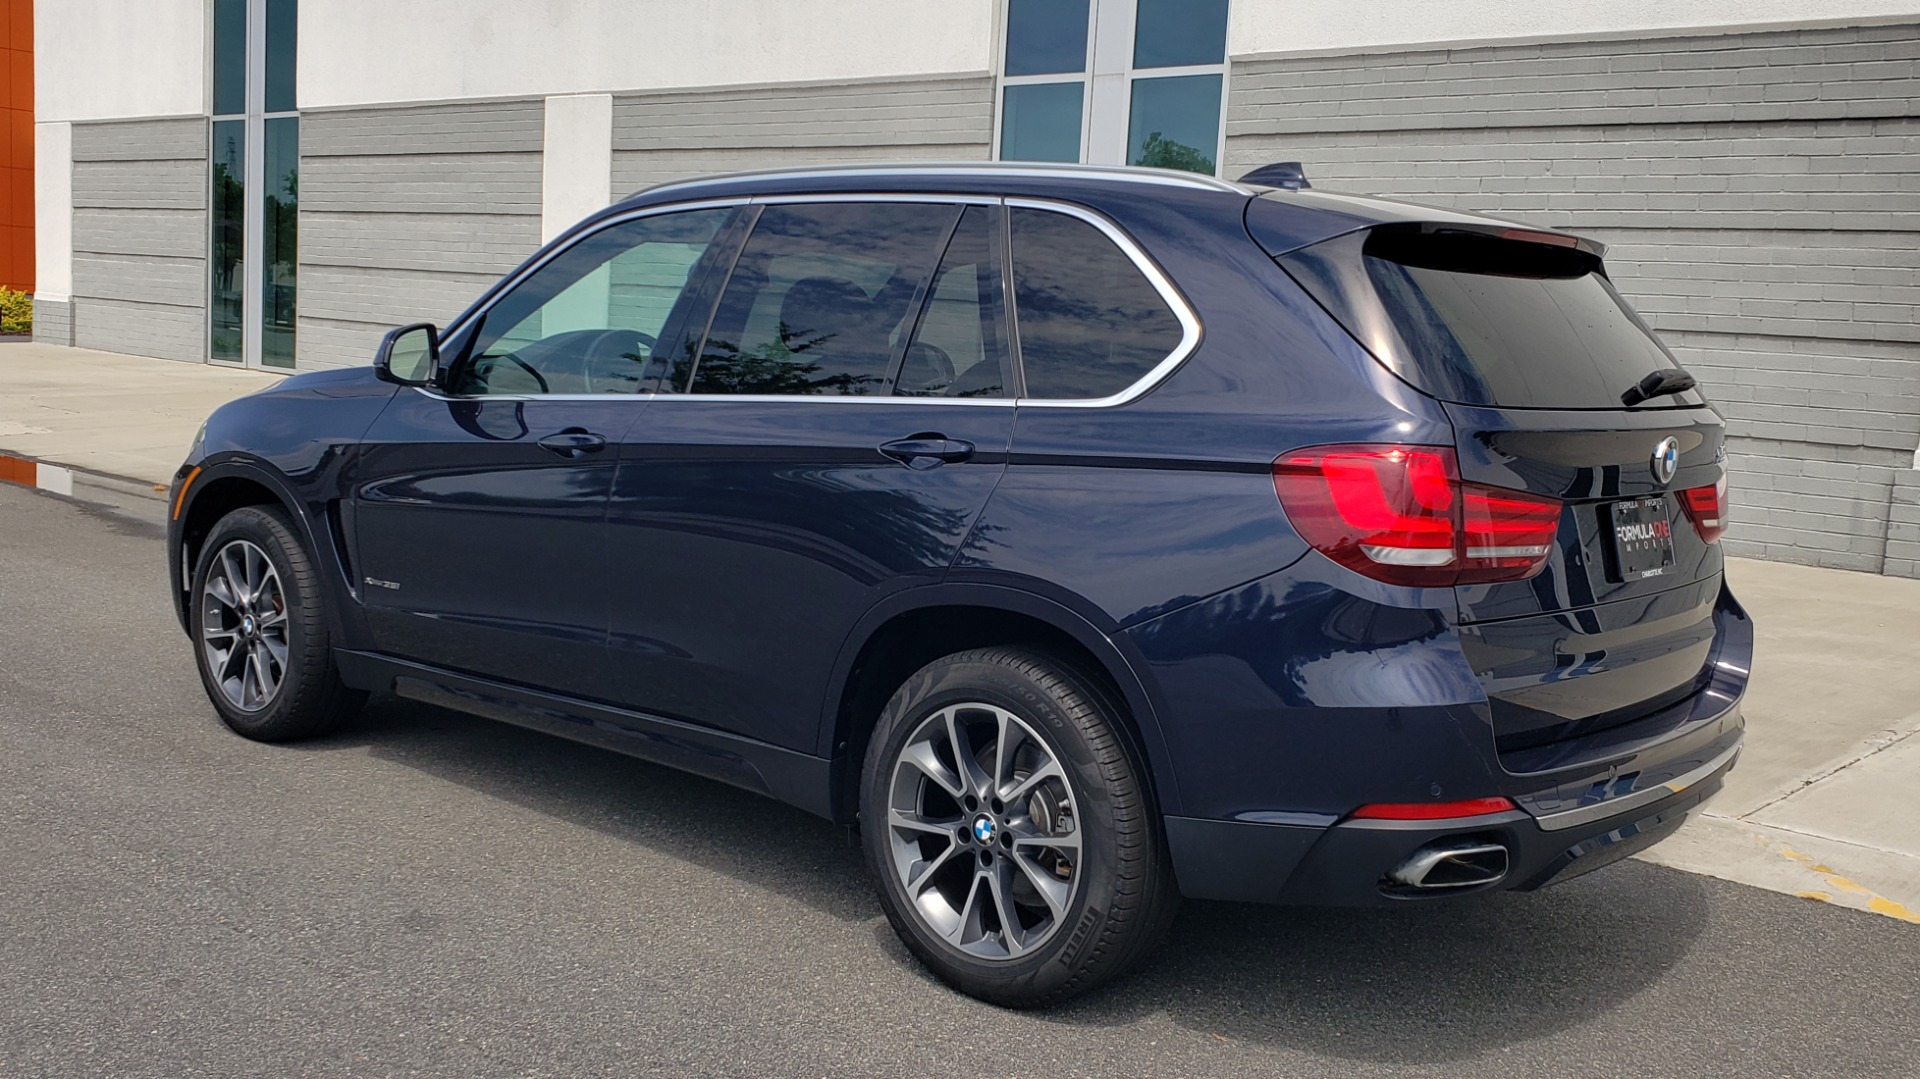 Used 2018 BMW X5 XDRIVE35I PREMIUM / LUXURY / DRVR ASST / HUD / LANE WARNING / REARVIEW for sale $43,695 at Formula Imports in Charlotte NC 28227 6